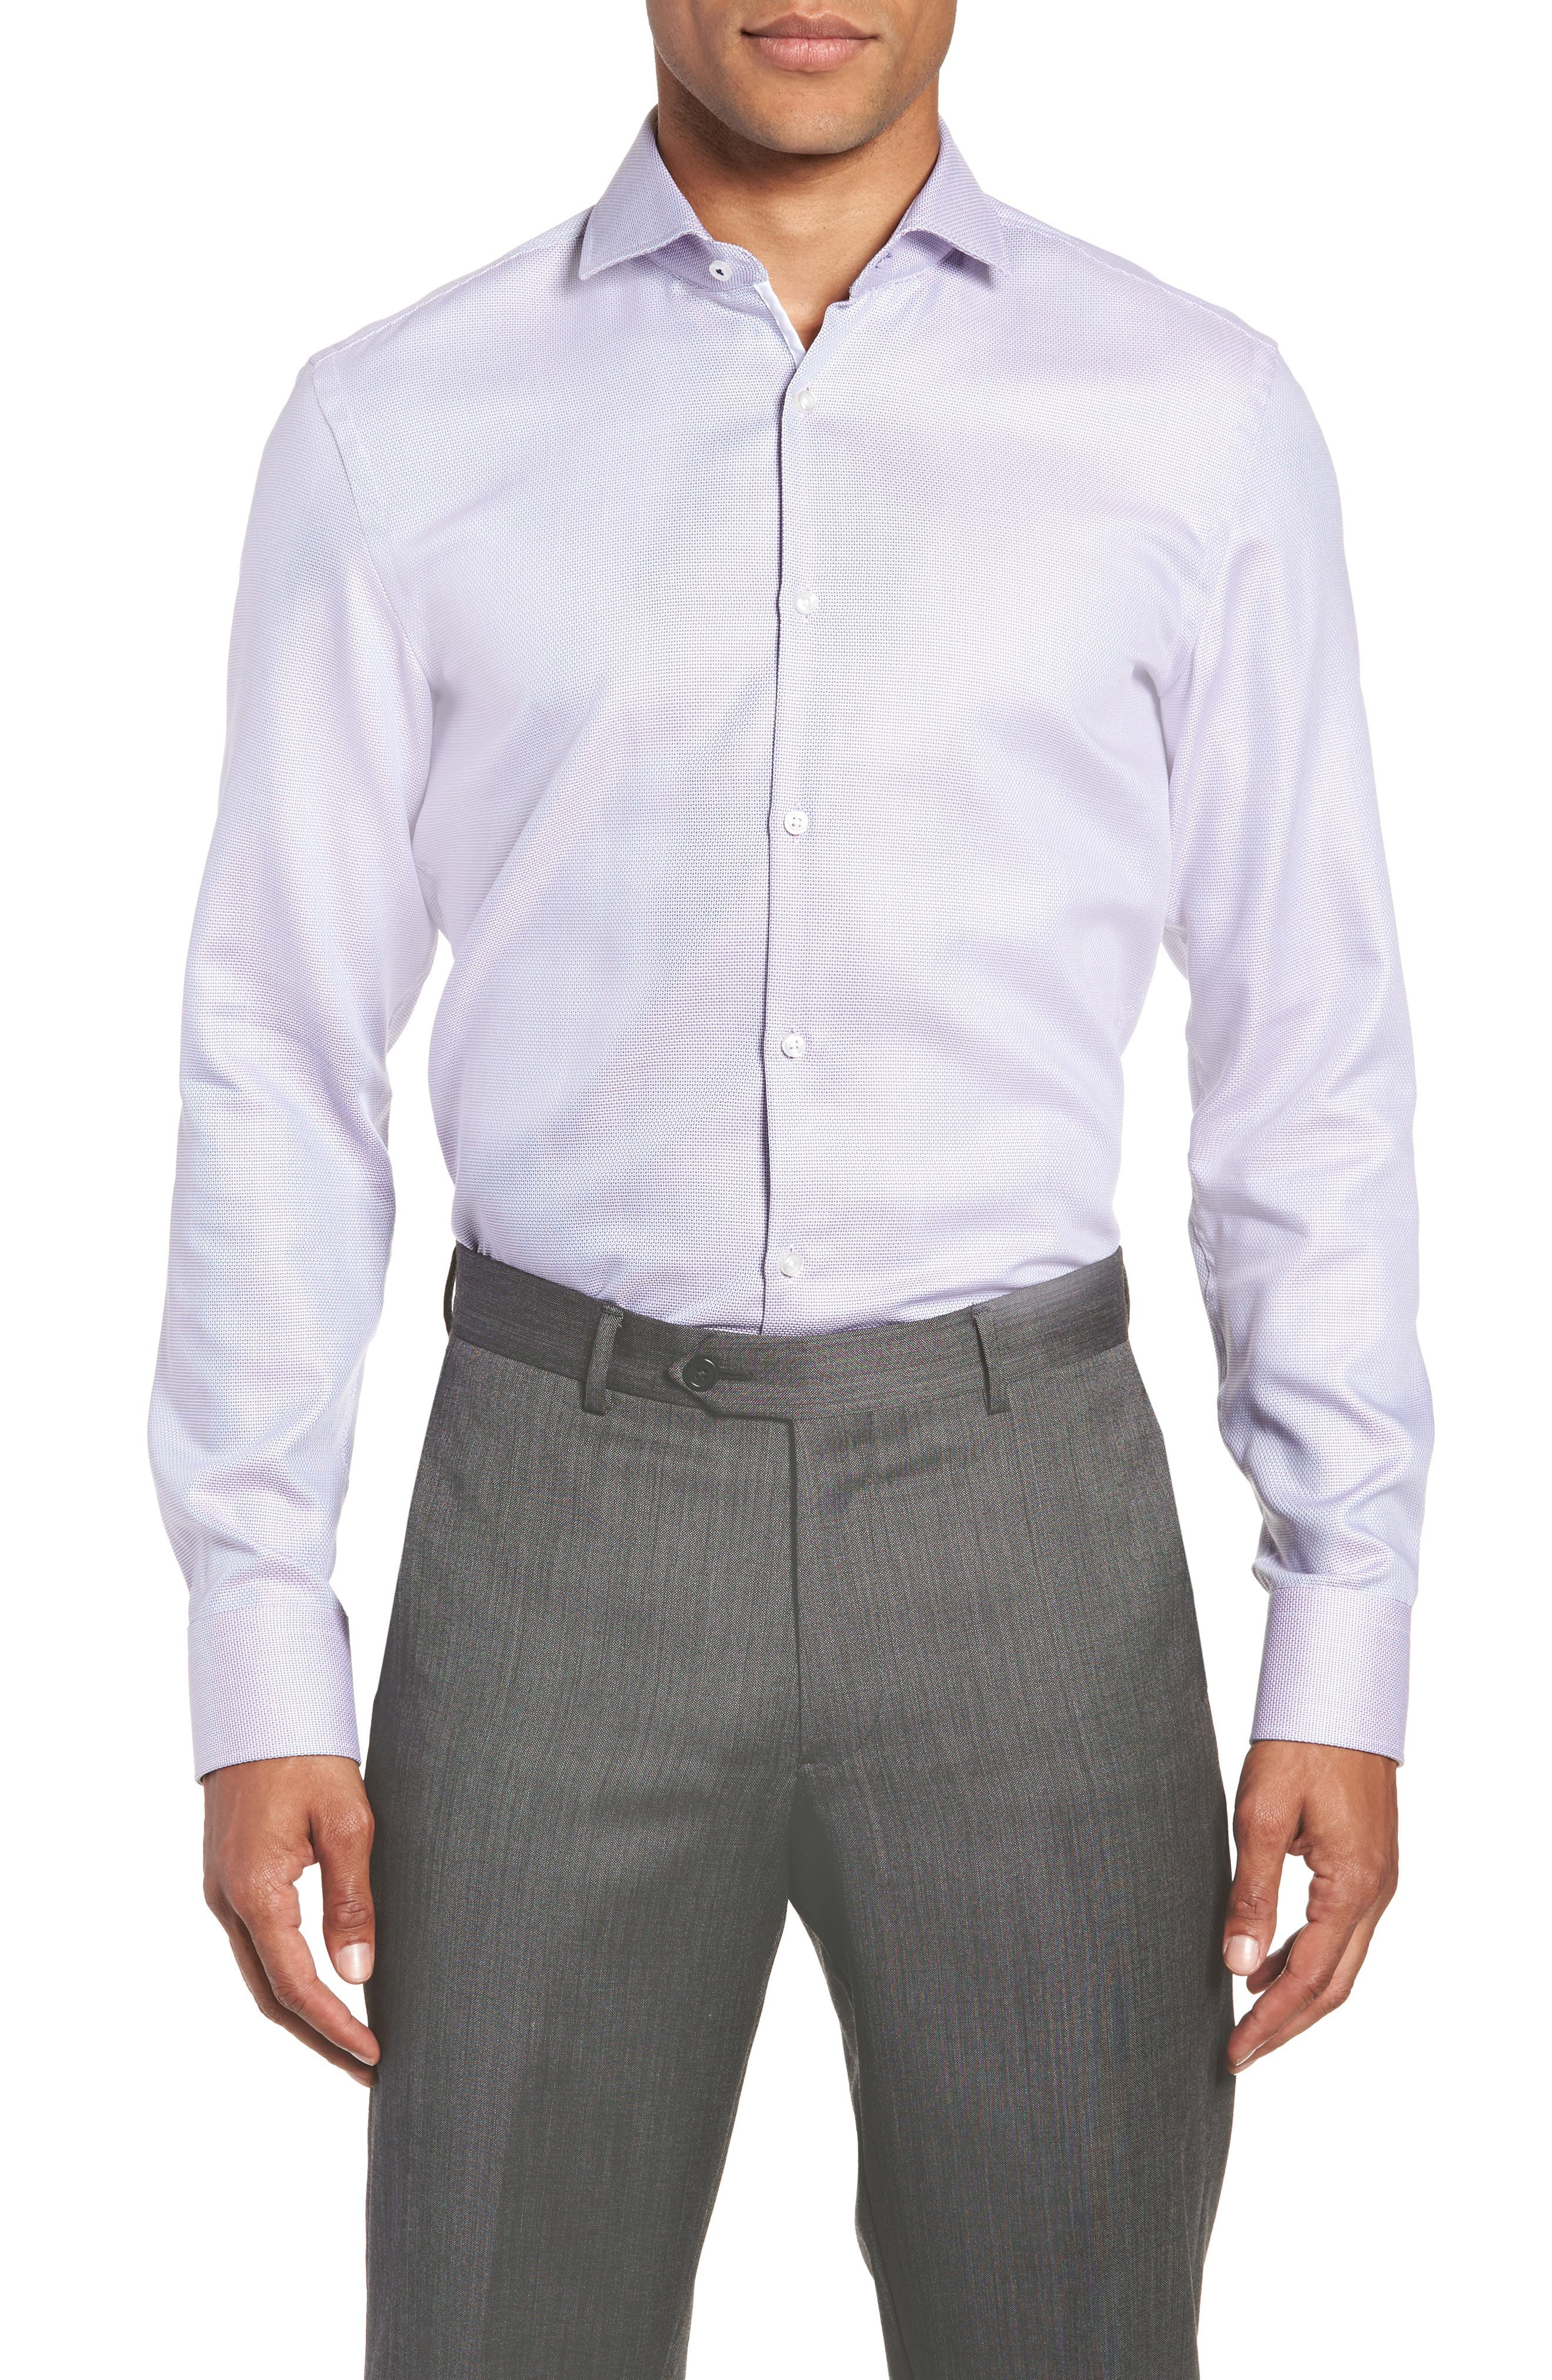 x Nordstrom Jerrin Slim Fit Solid Dress Shirt,                         Main,                         color, RED